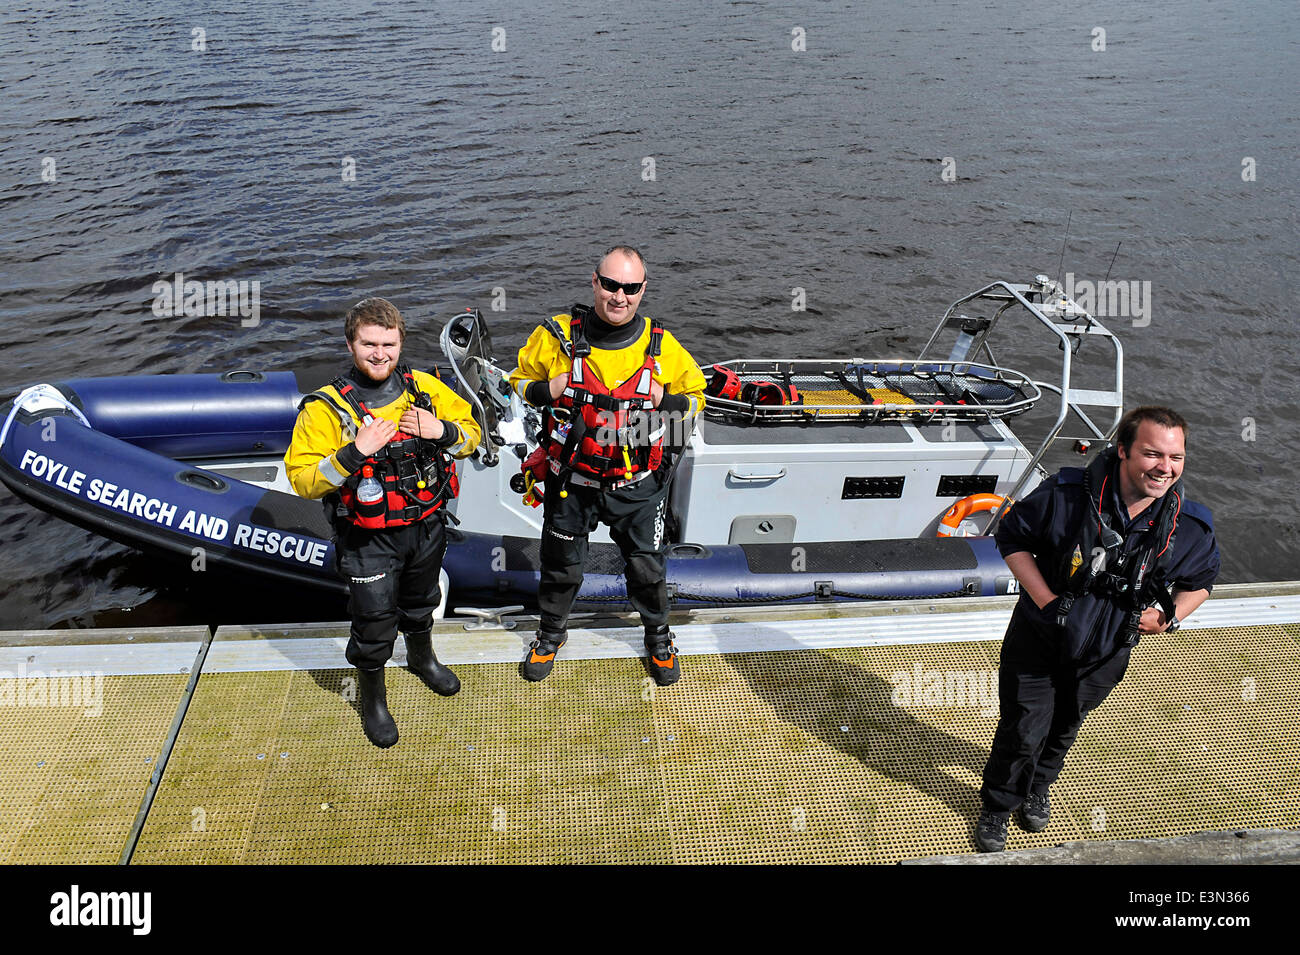 Crew members of the emergency Foyle Search And Rescue, wearing life jackets, on duty at the River Foyle, Derry, - Stock Image